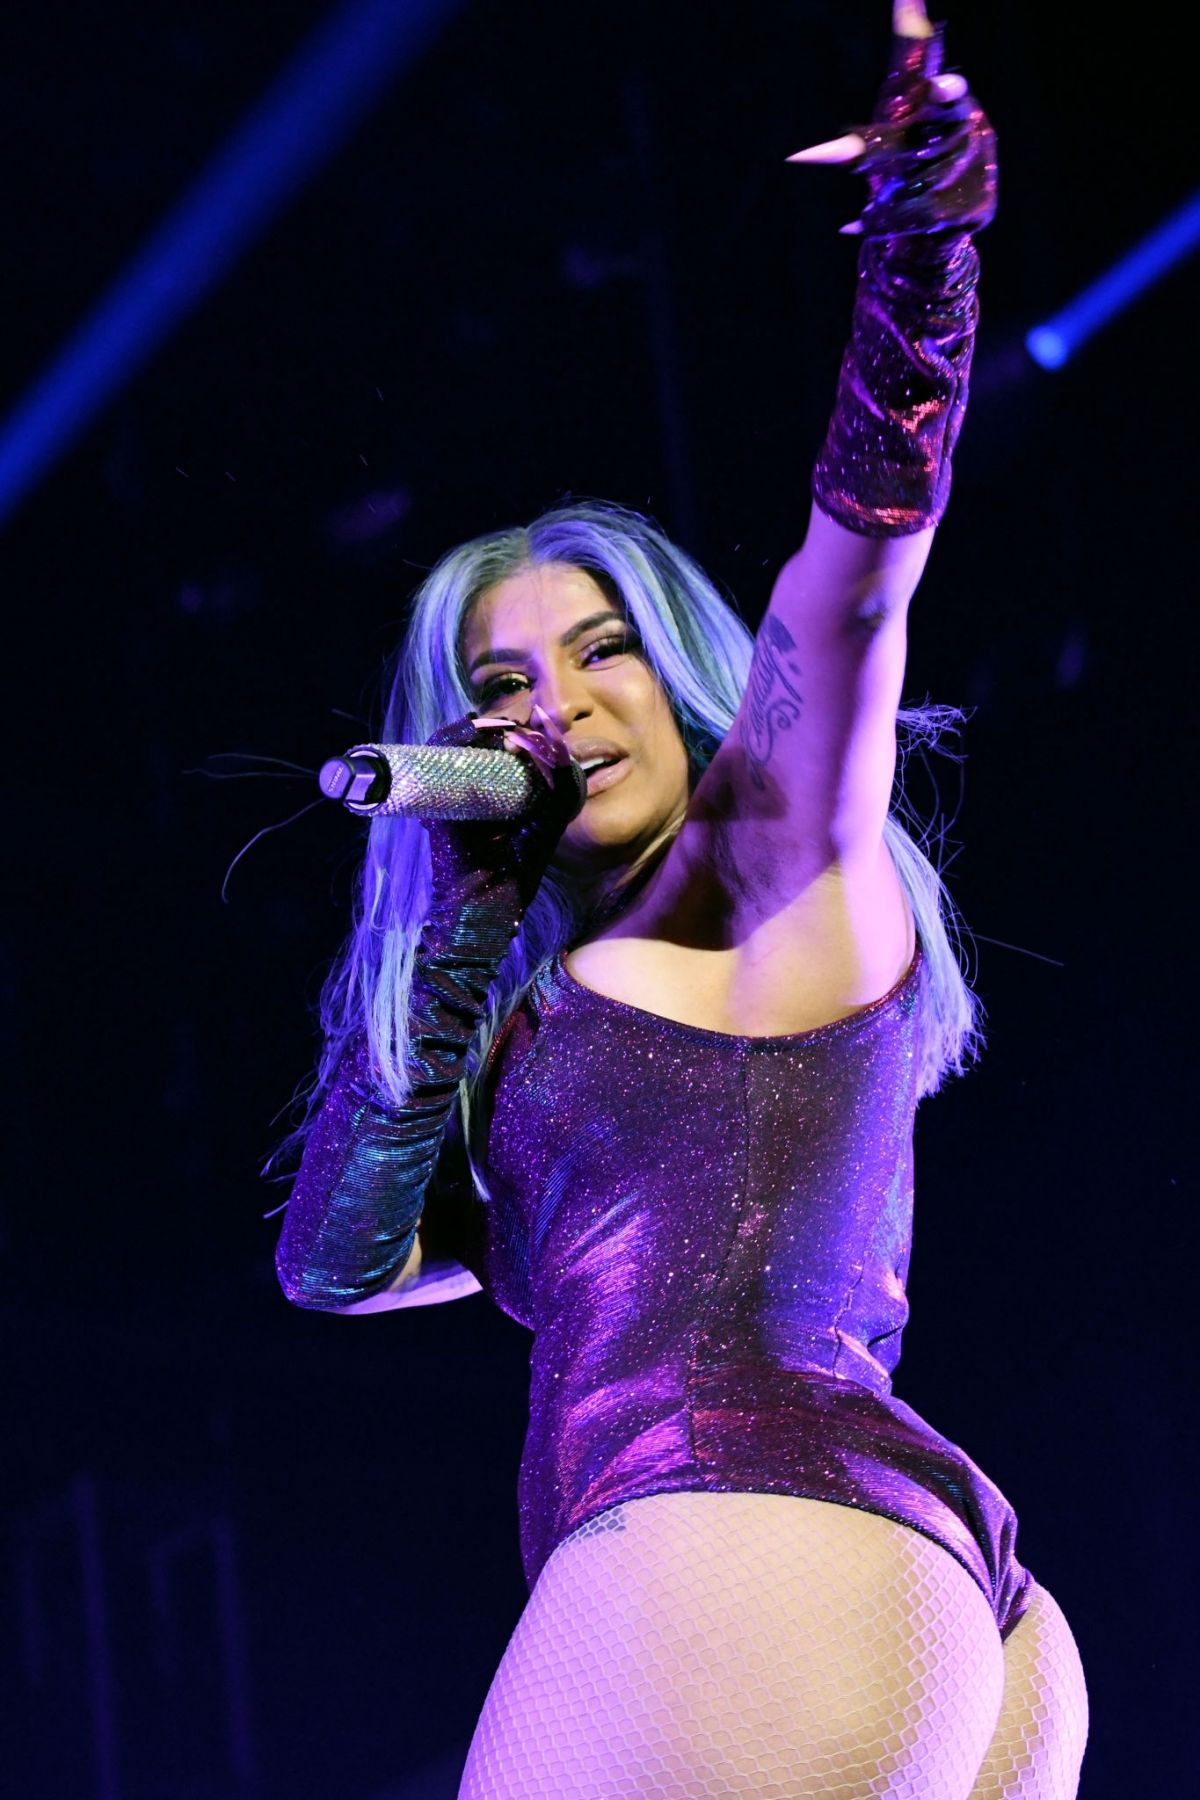 Cardi B Gives A Fan Free Cardi Tickets Forever For: CARDI B Performs At Staples Center Concert During BET